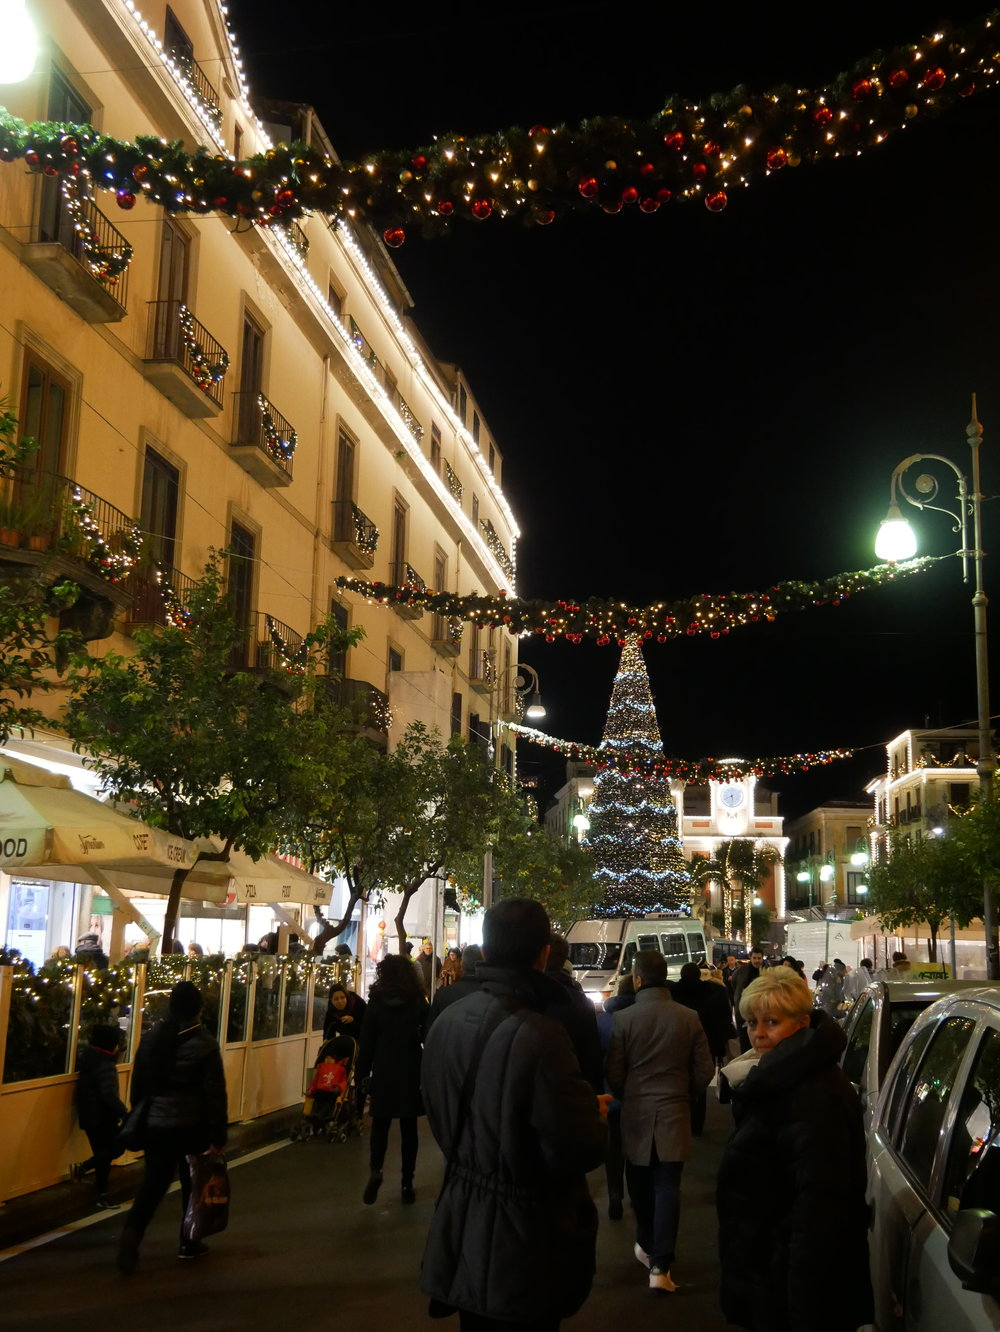 Sorrento Christmas.jpg